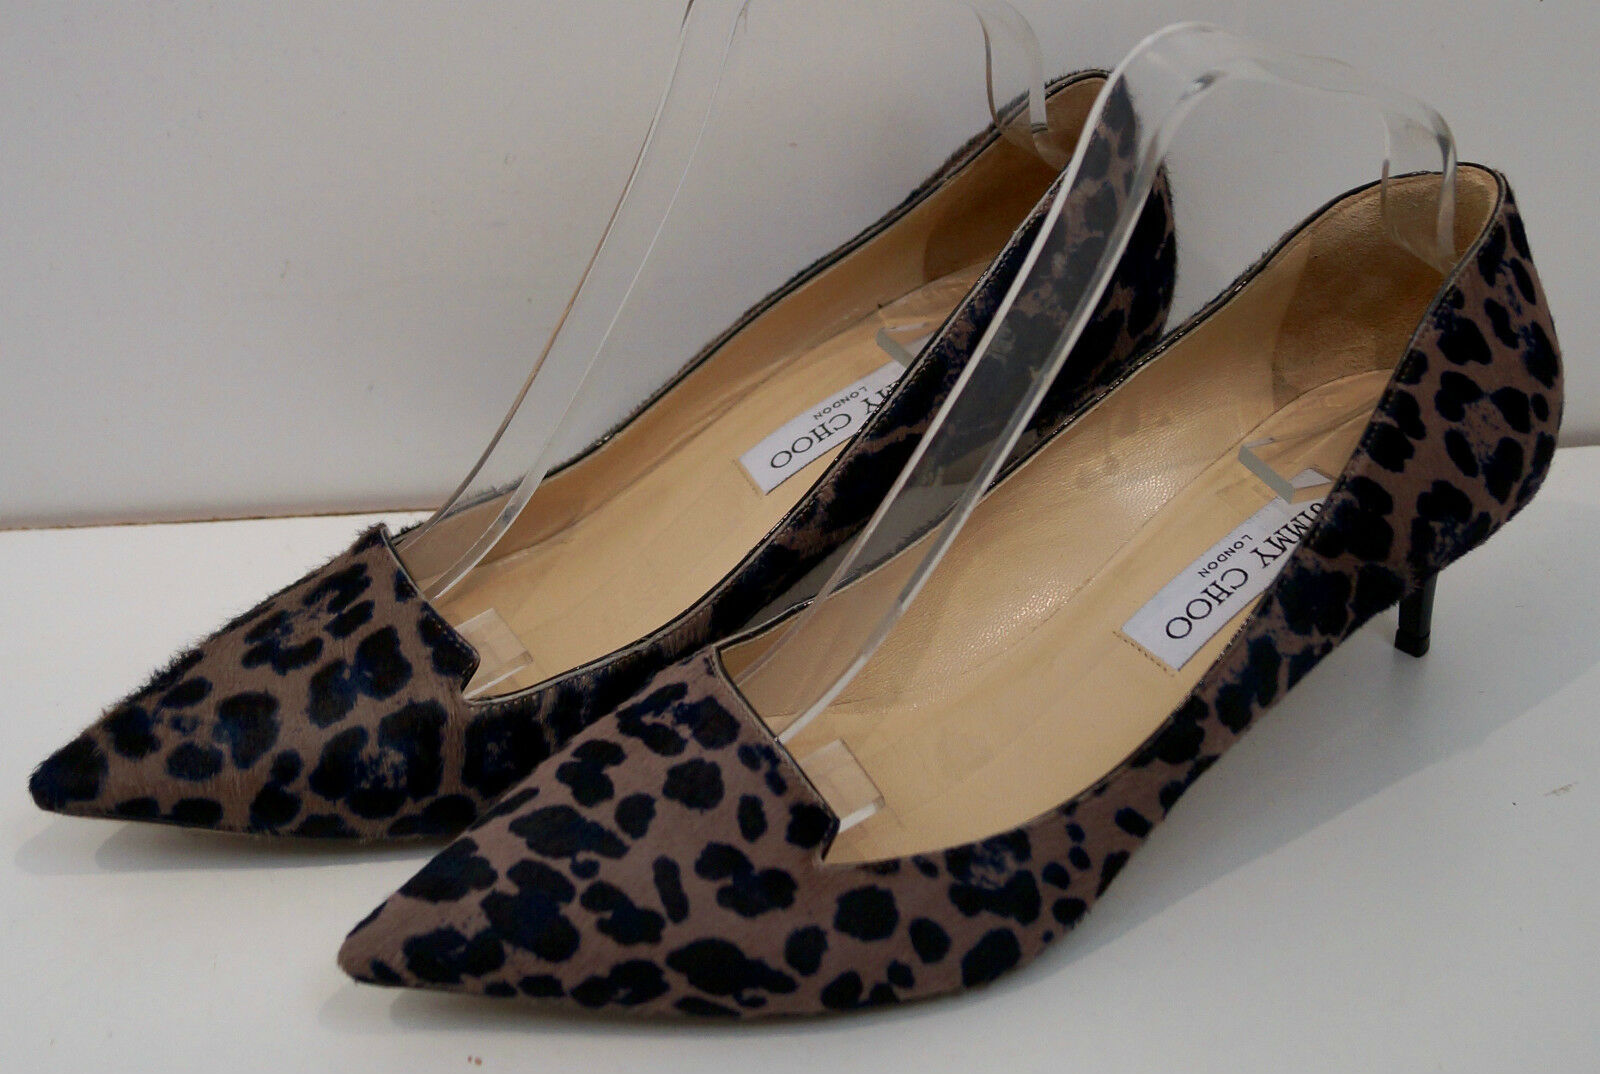 JIMMY CHOO Taupe Brown & Black Leopard Print Hair & Leather Court Pump shoes 7.5